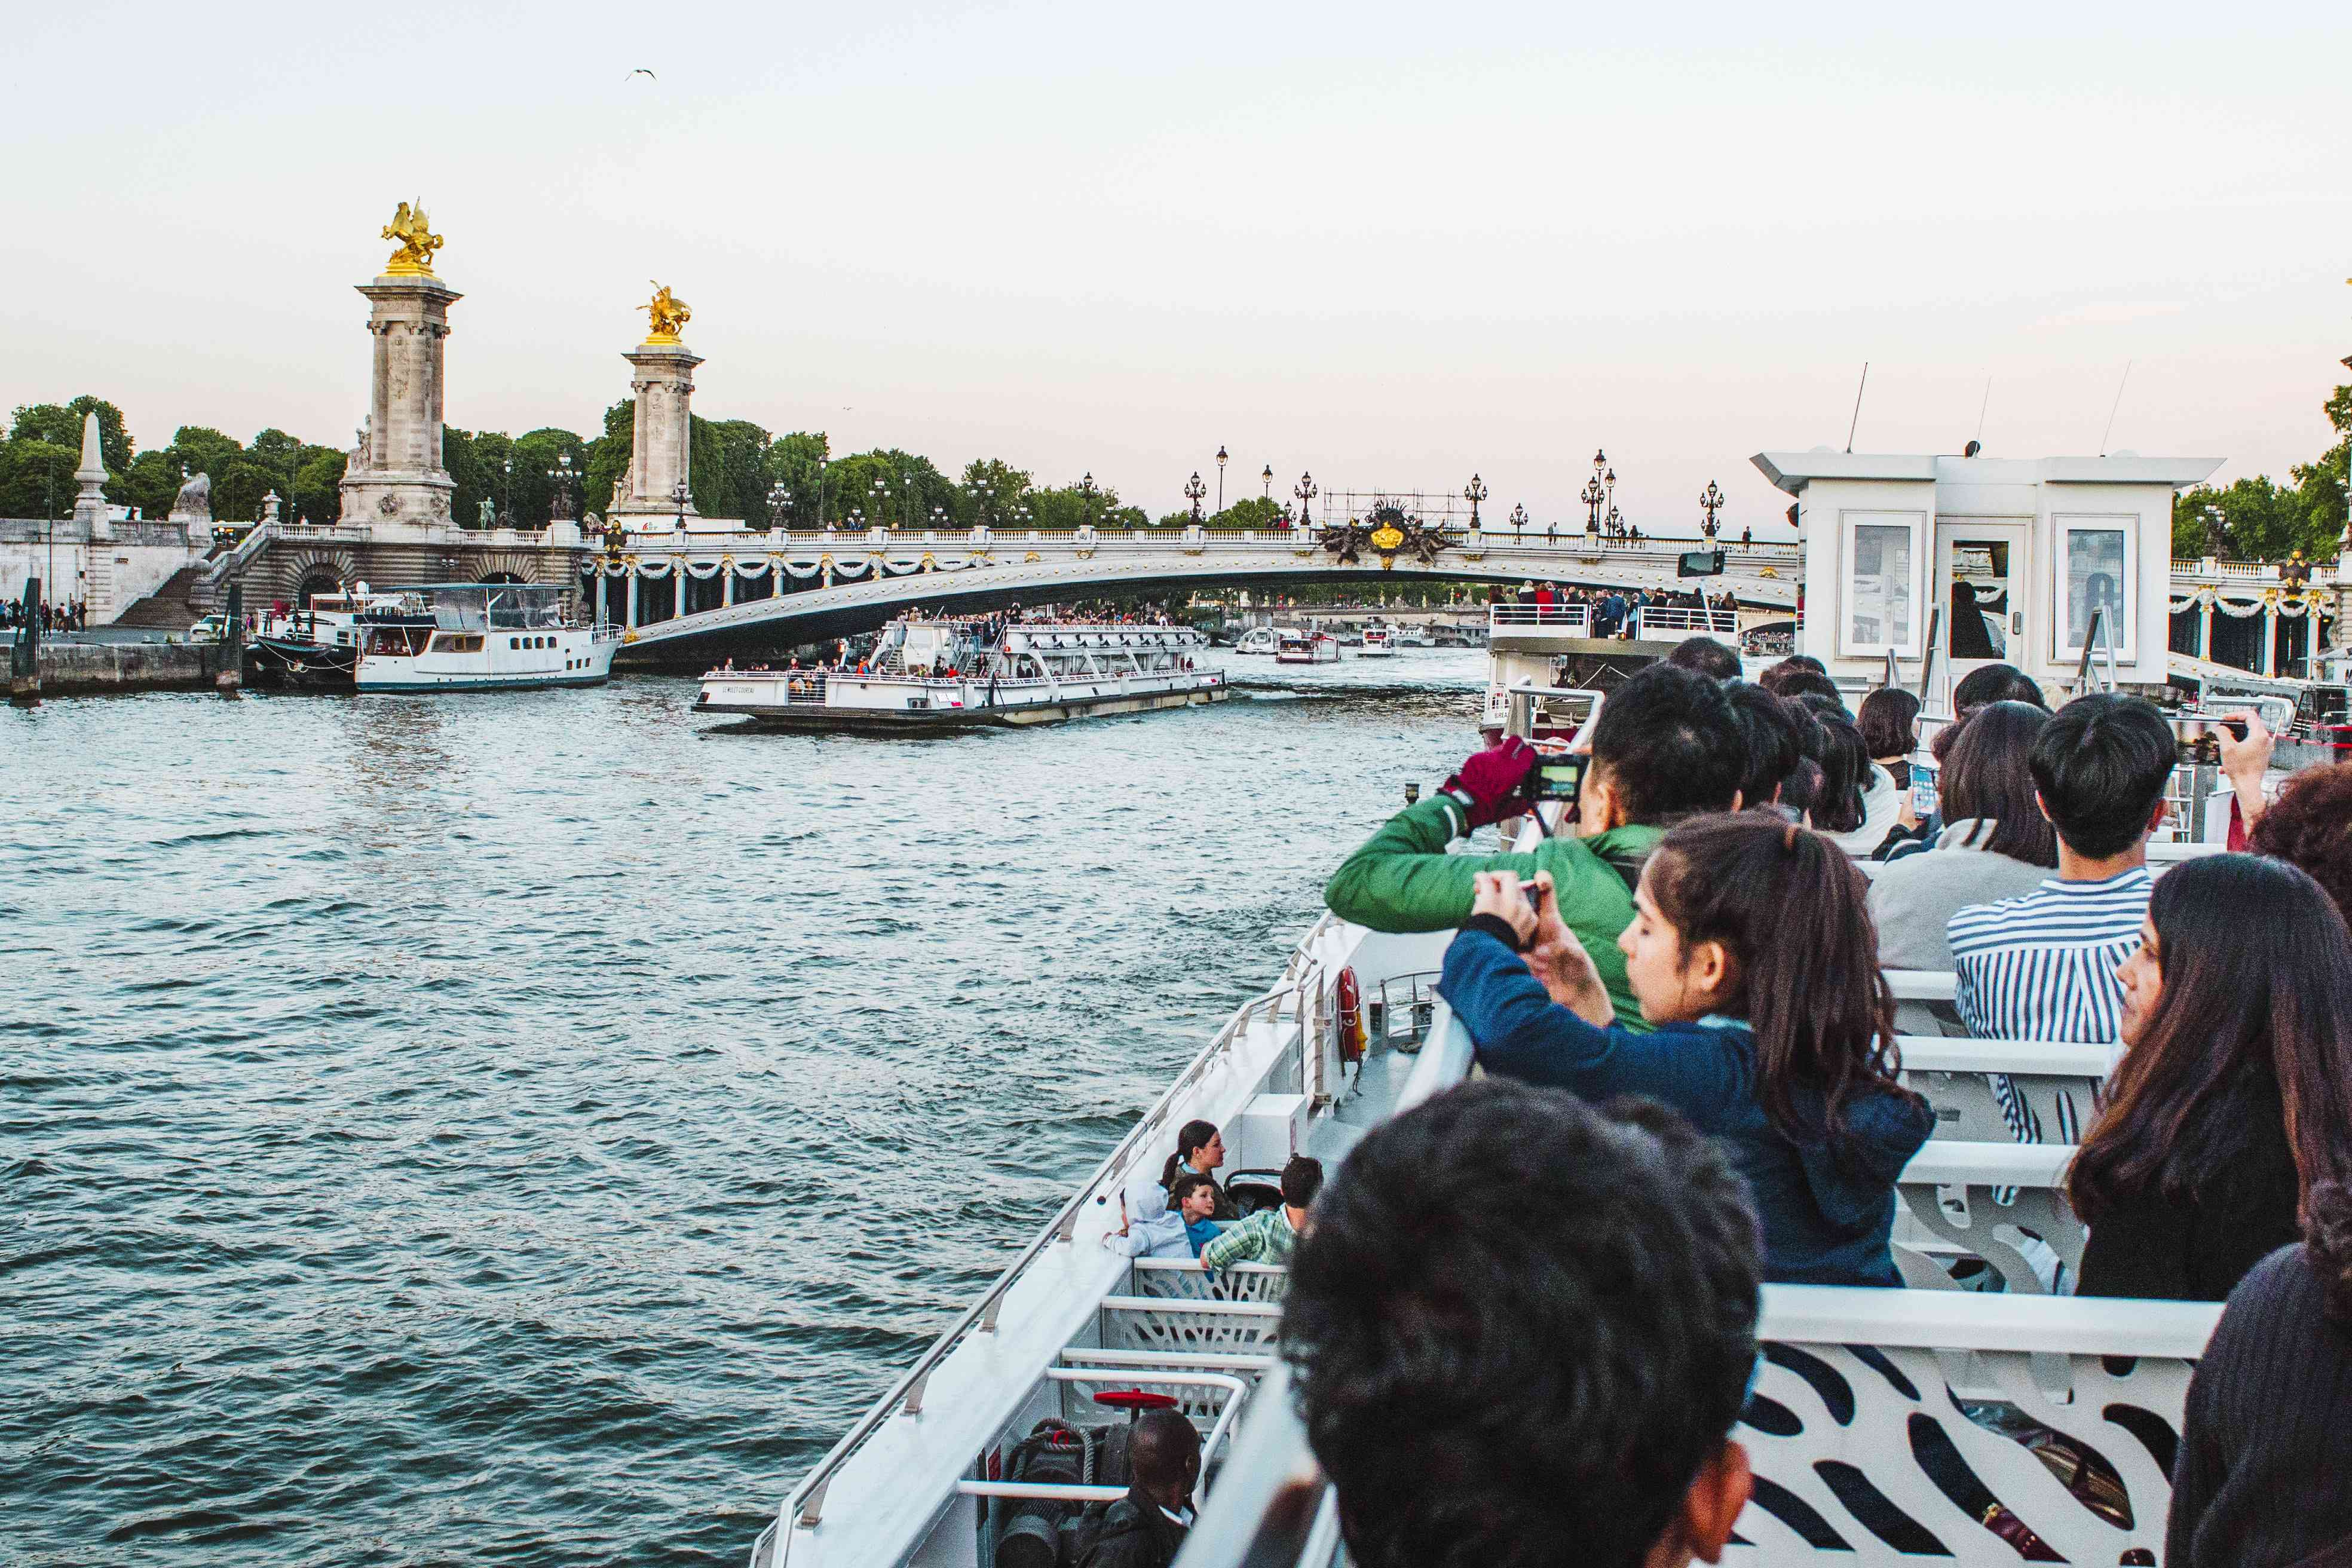 People on a seine cruise